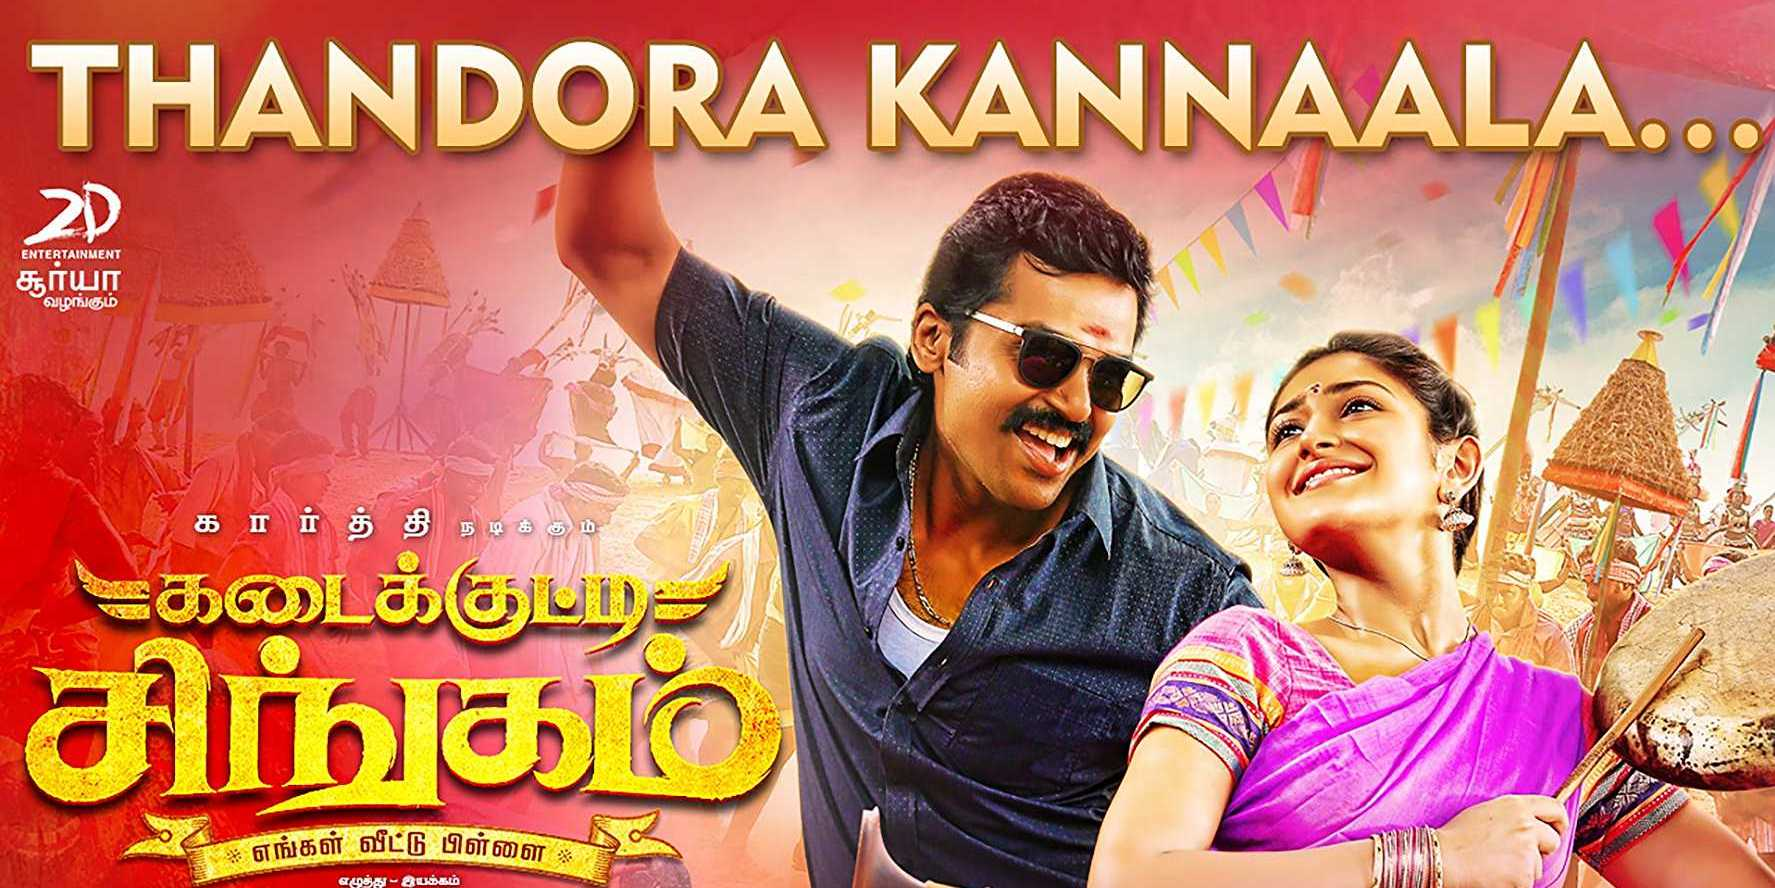 Kadaikutty Singam Karthi Hot Sayyeshaa Movie Reviews and Ratings